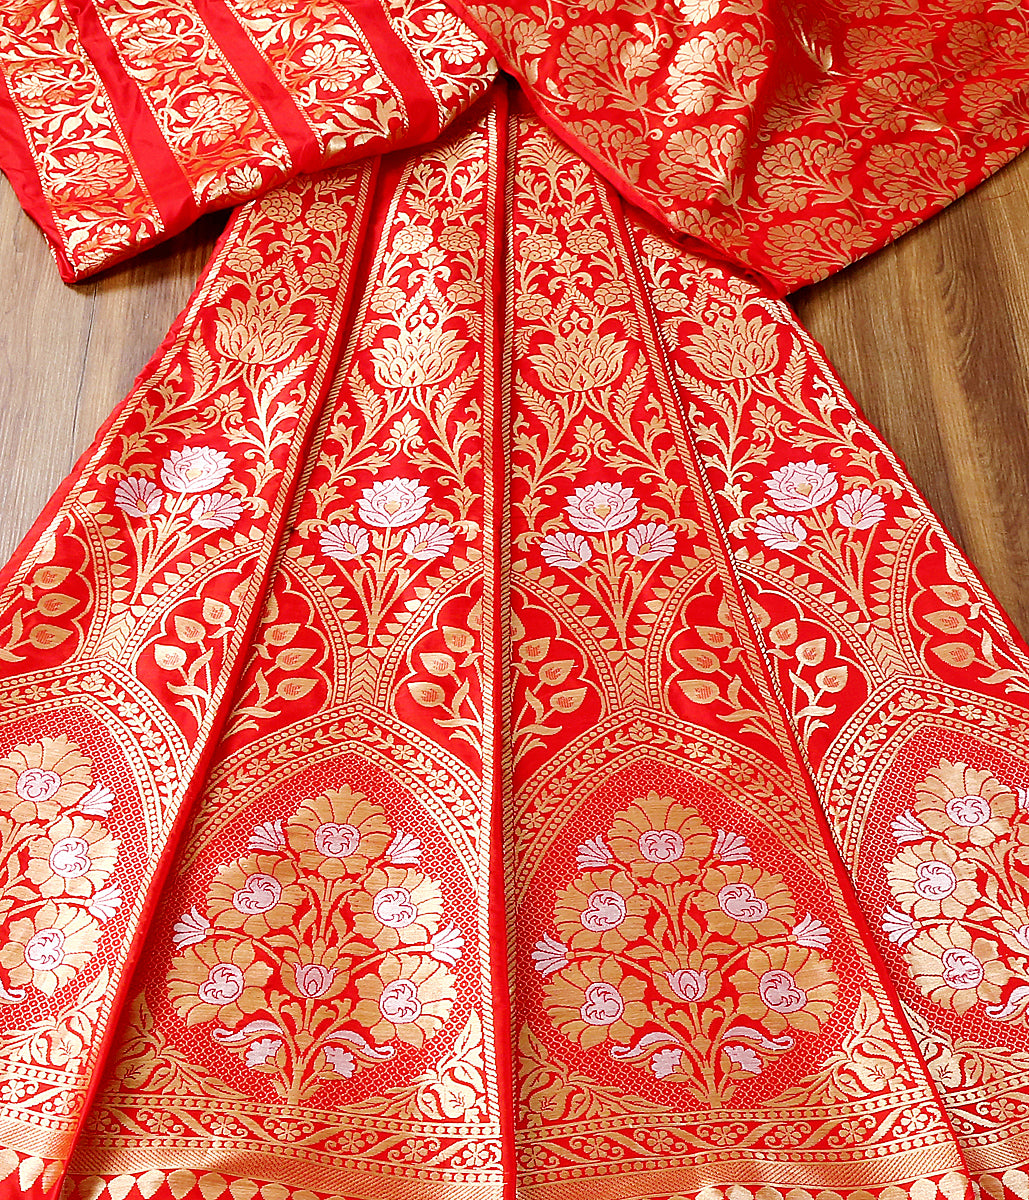 Handwoven Banarasi Lehenga in Red Color